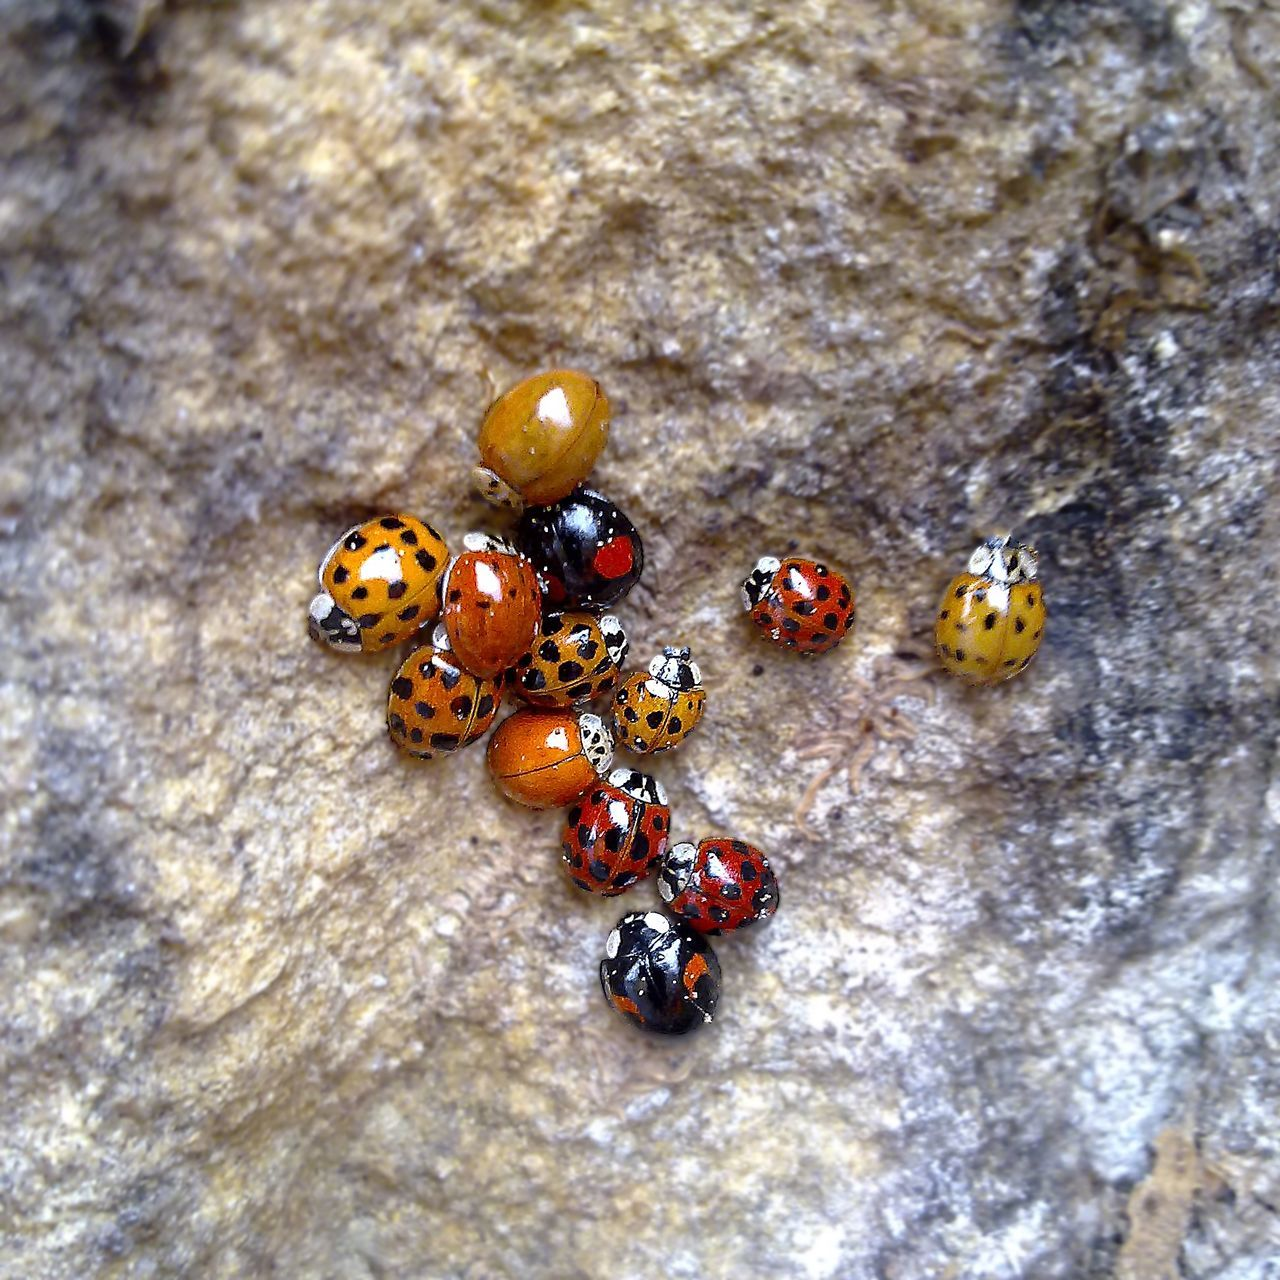 The gang Close-up Coccinella Coccinelle Insect Insect Photography Insects  Insects Collection Ladybug Ladybugs Nature Nature Nature_collection Redpoint Selective Focus Macro Macro_collection Macro Photography Macro Beauty Macro Nature